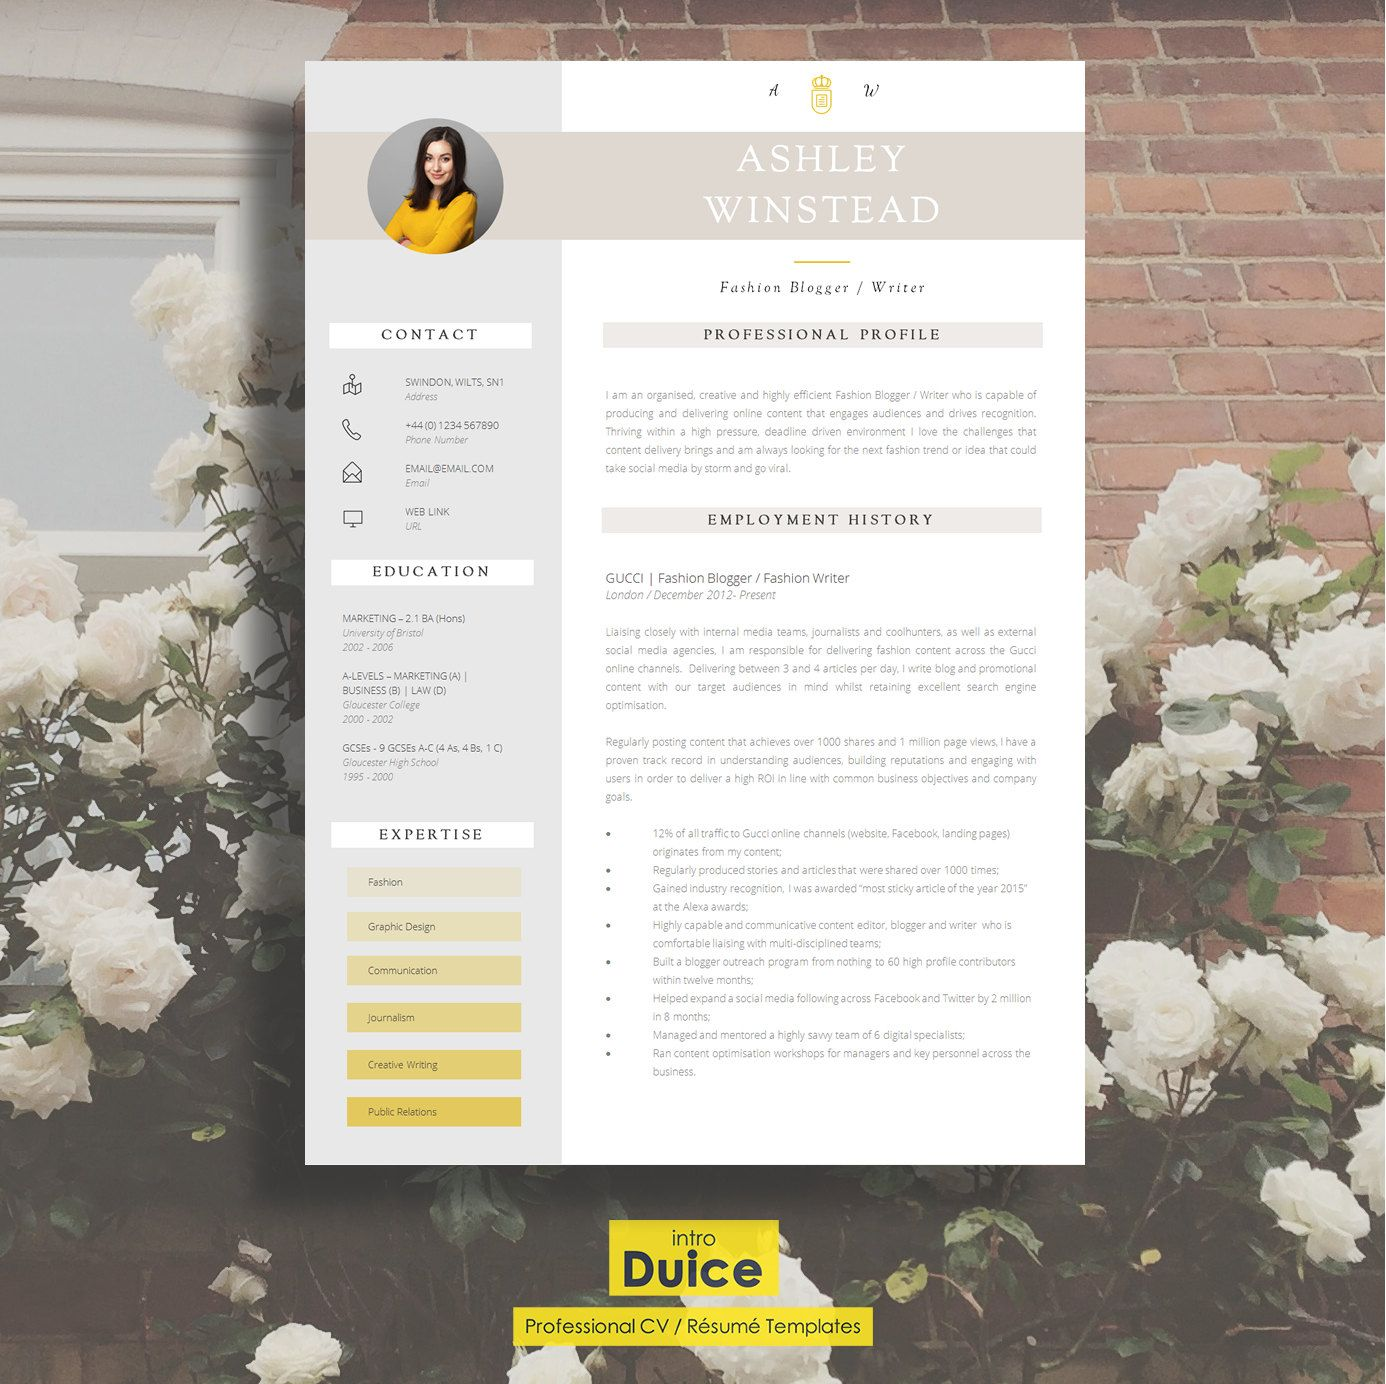 Seo Analyst Sample Resume SEO Analyst Resume Template Word, PSD And  InDesign Format .